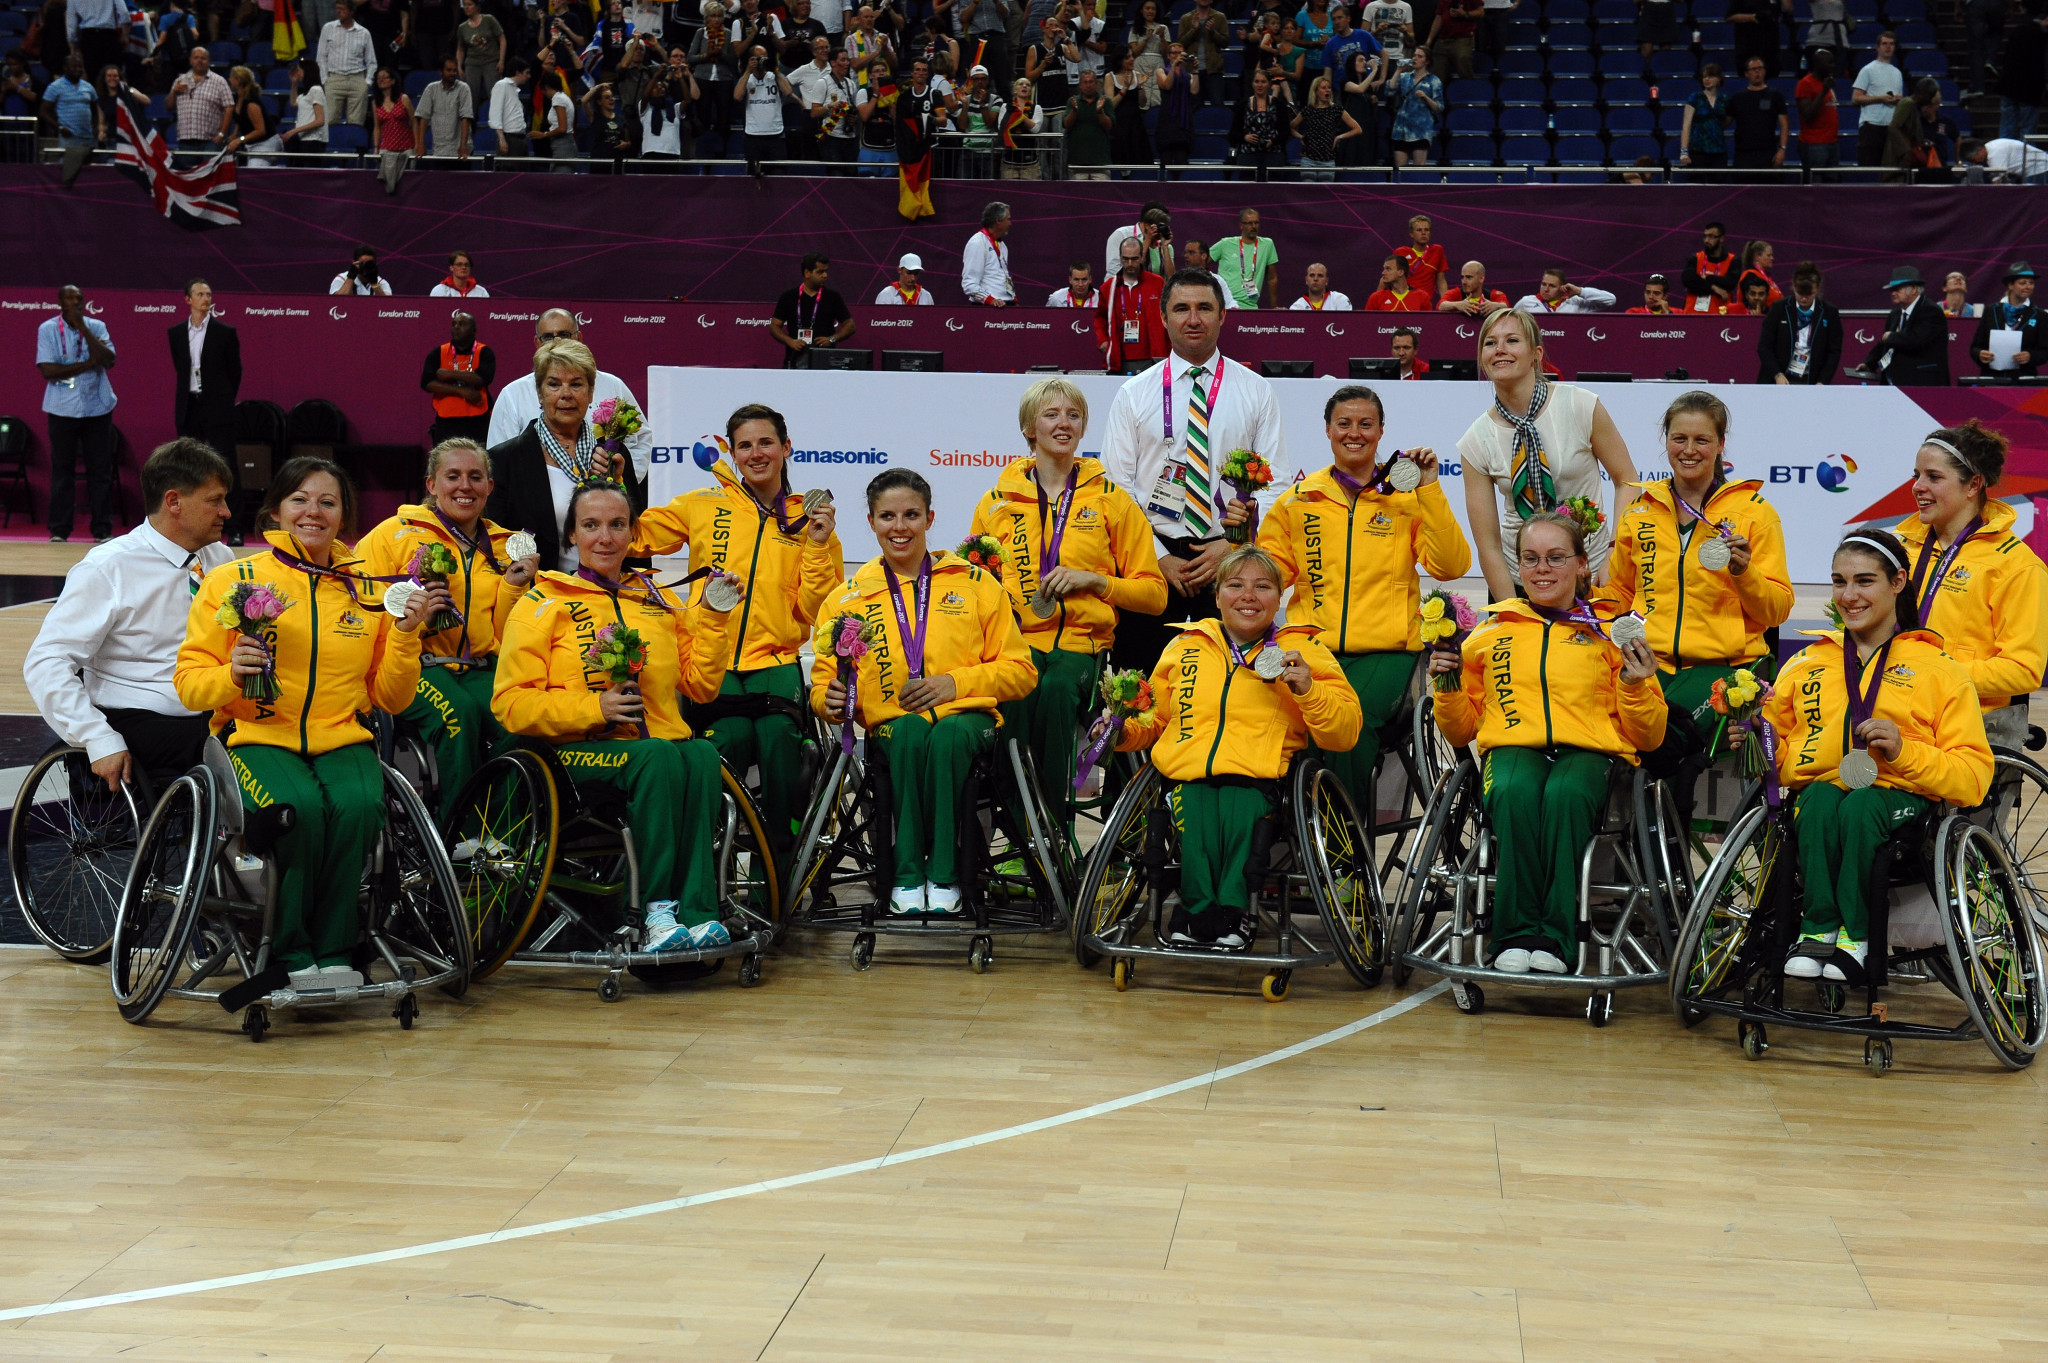 Australia's women's wheelchair basketball team will hope to go one better at Tokyo 2020 than their last Paralympic appearance - when they took silver at London 2012 ©Getty Images